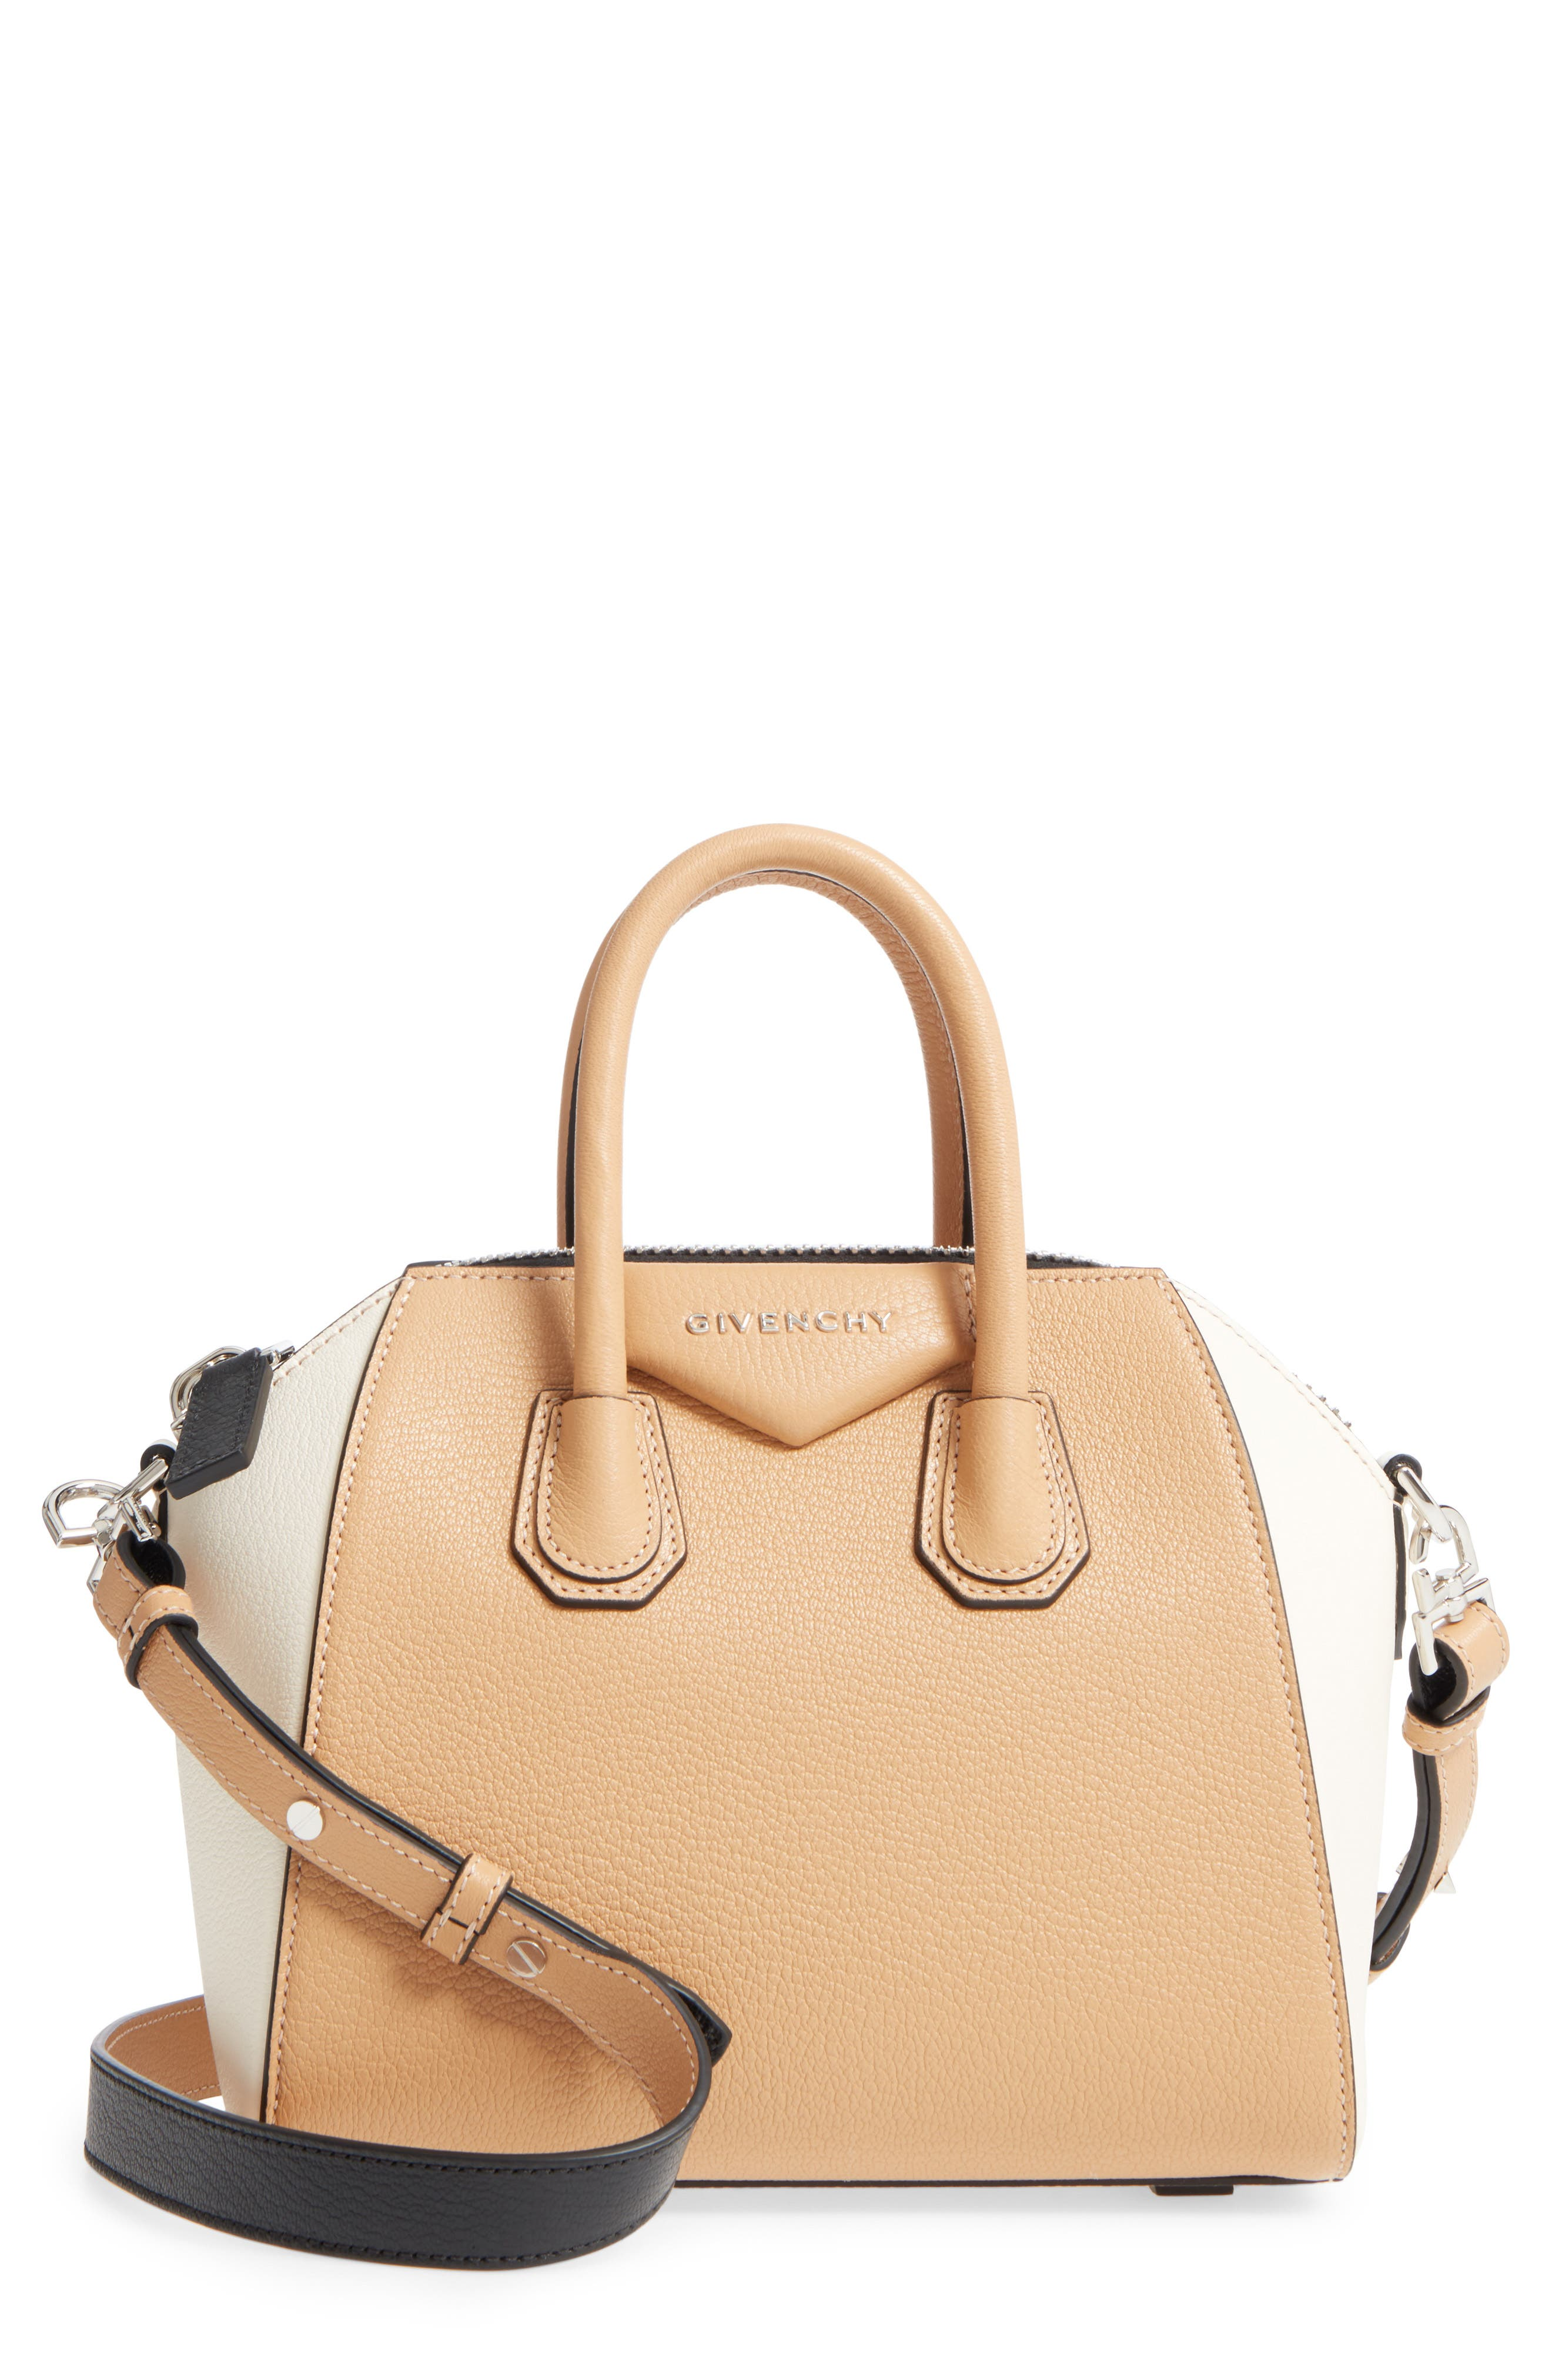 Mini Antigona Bicolor Sugar Leather Satchel,                             Main thumbnail 1, color,